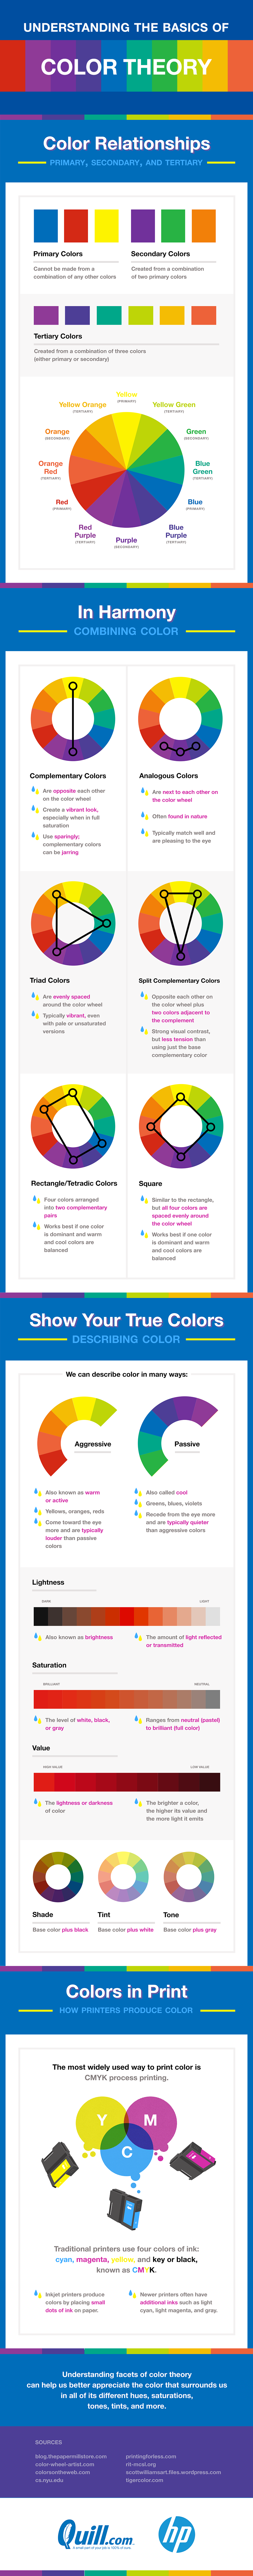 Understanding the basics of color theory, webdesign